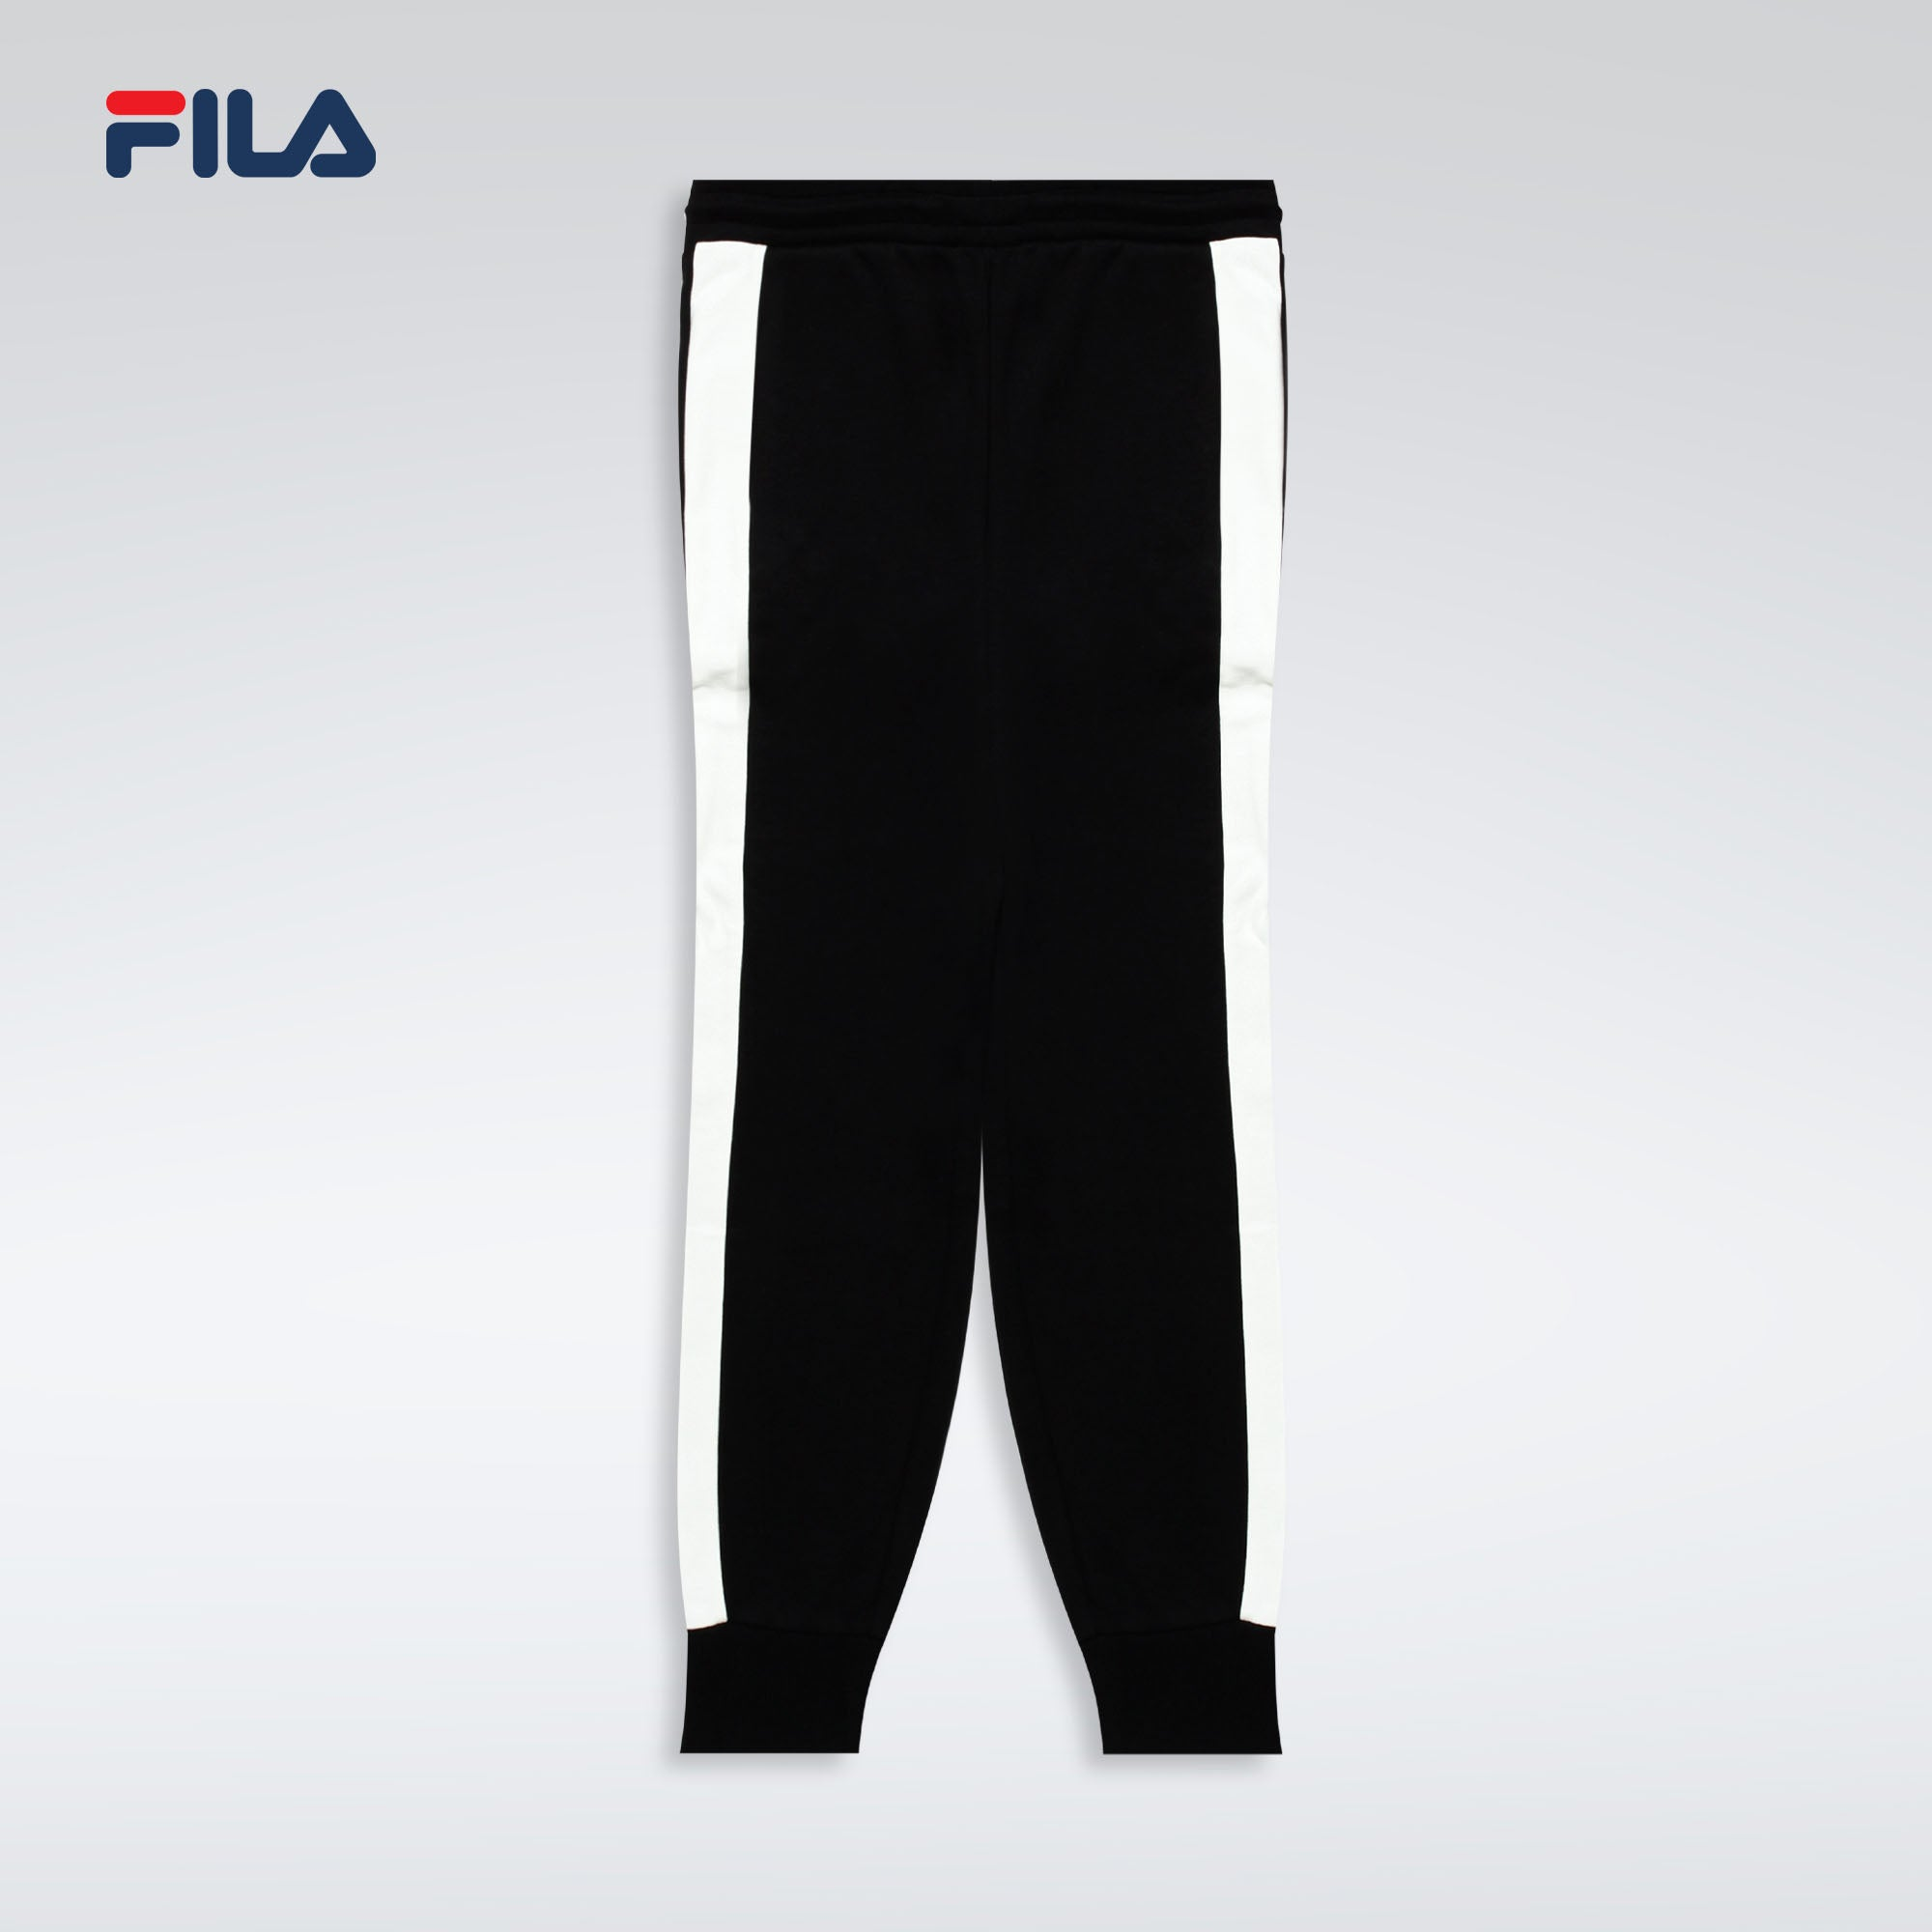 FILA Korea Knit Bottoms BLK